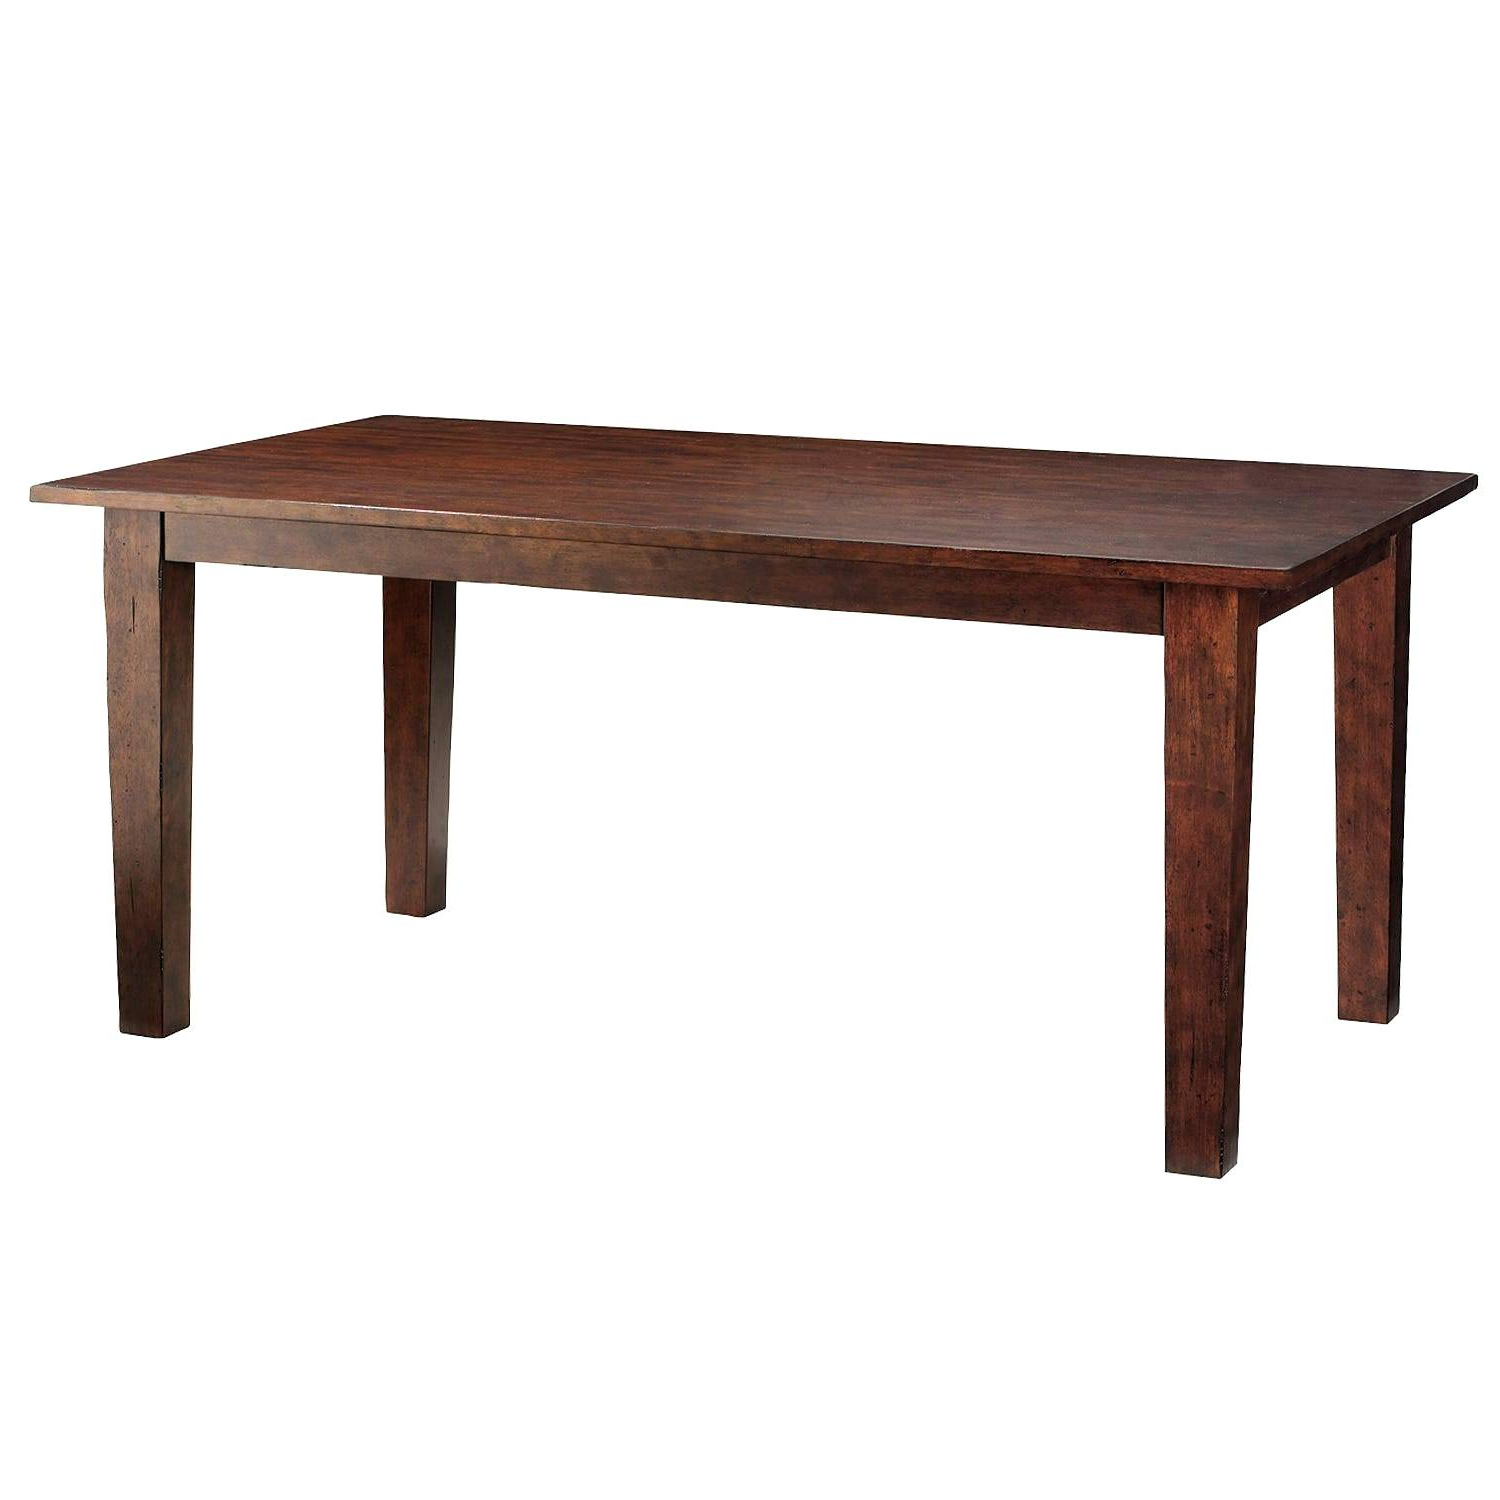 Four Hands Furniture Vbna T513 Dining Room Graham 84 Dining With Widely Used Acacia Dining Tables With Black Rocket Legs (View 21 of 25)